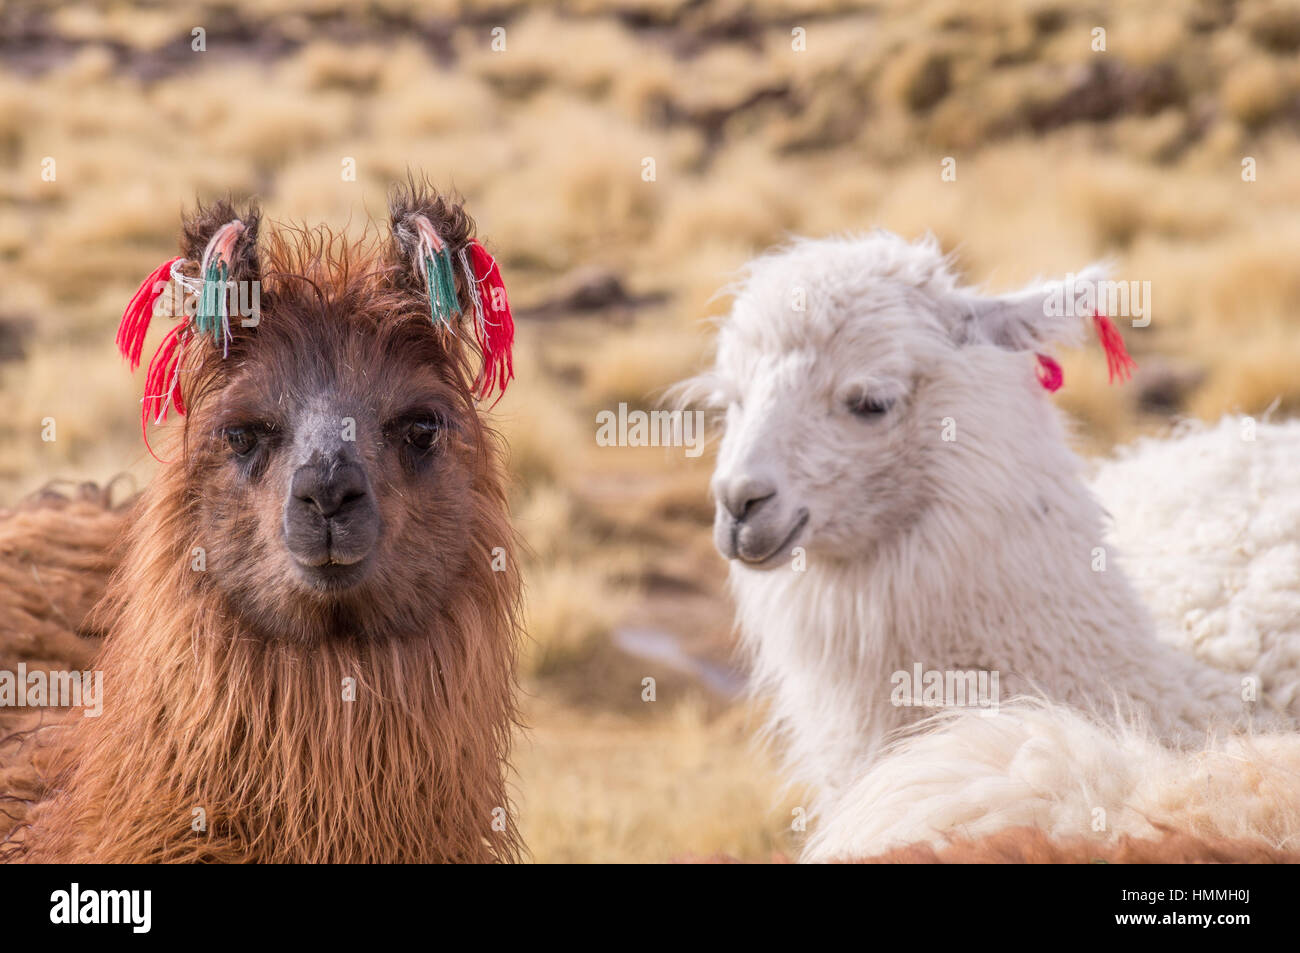 Portrait of Lamas Alpacas with colorful decoration in altiplano - Stock Image